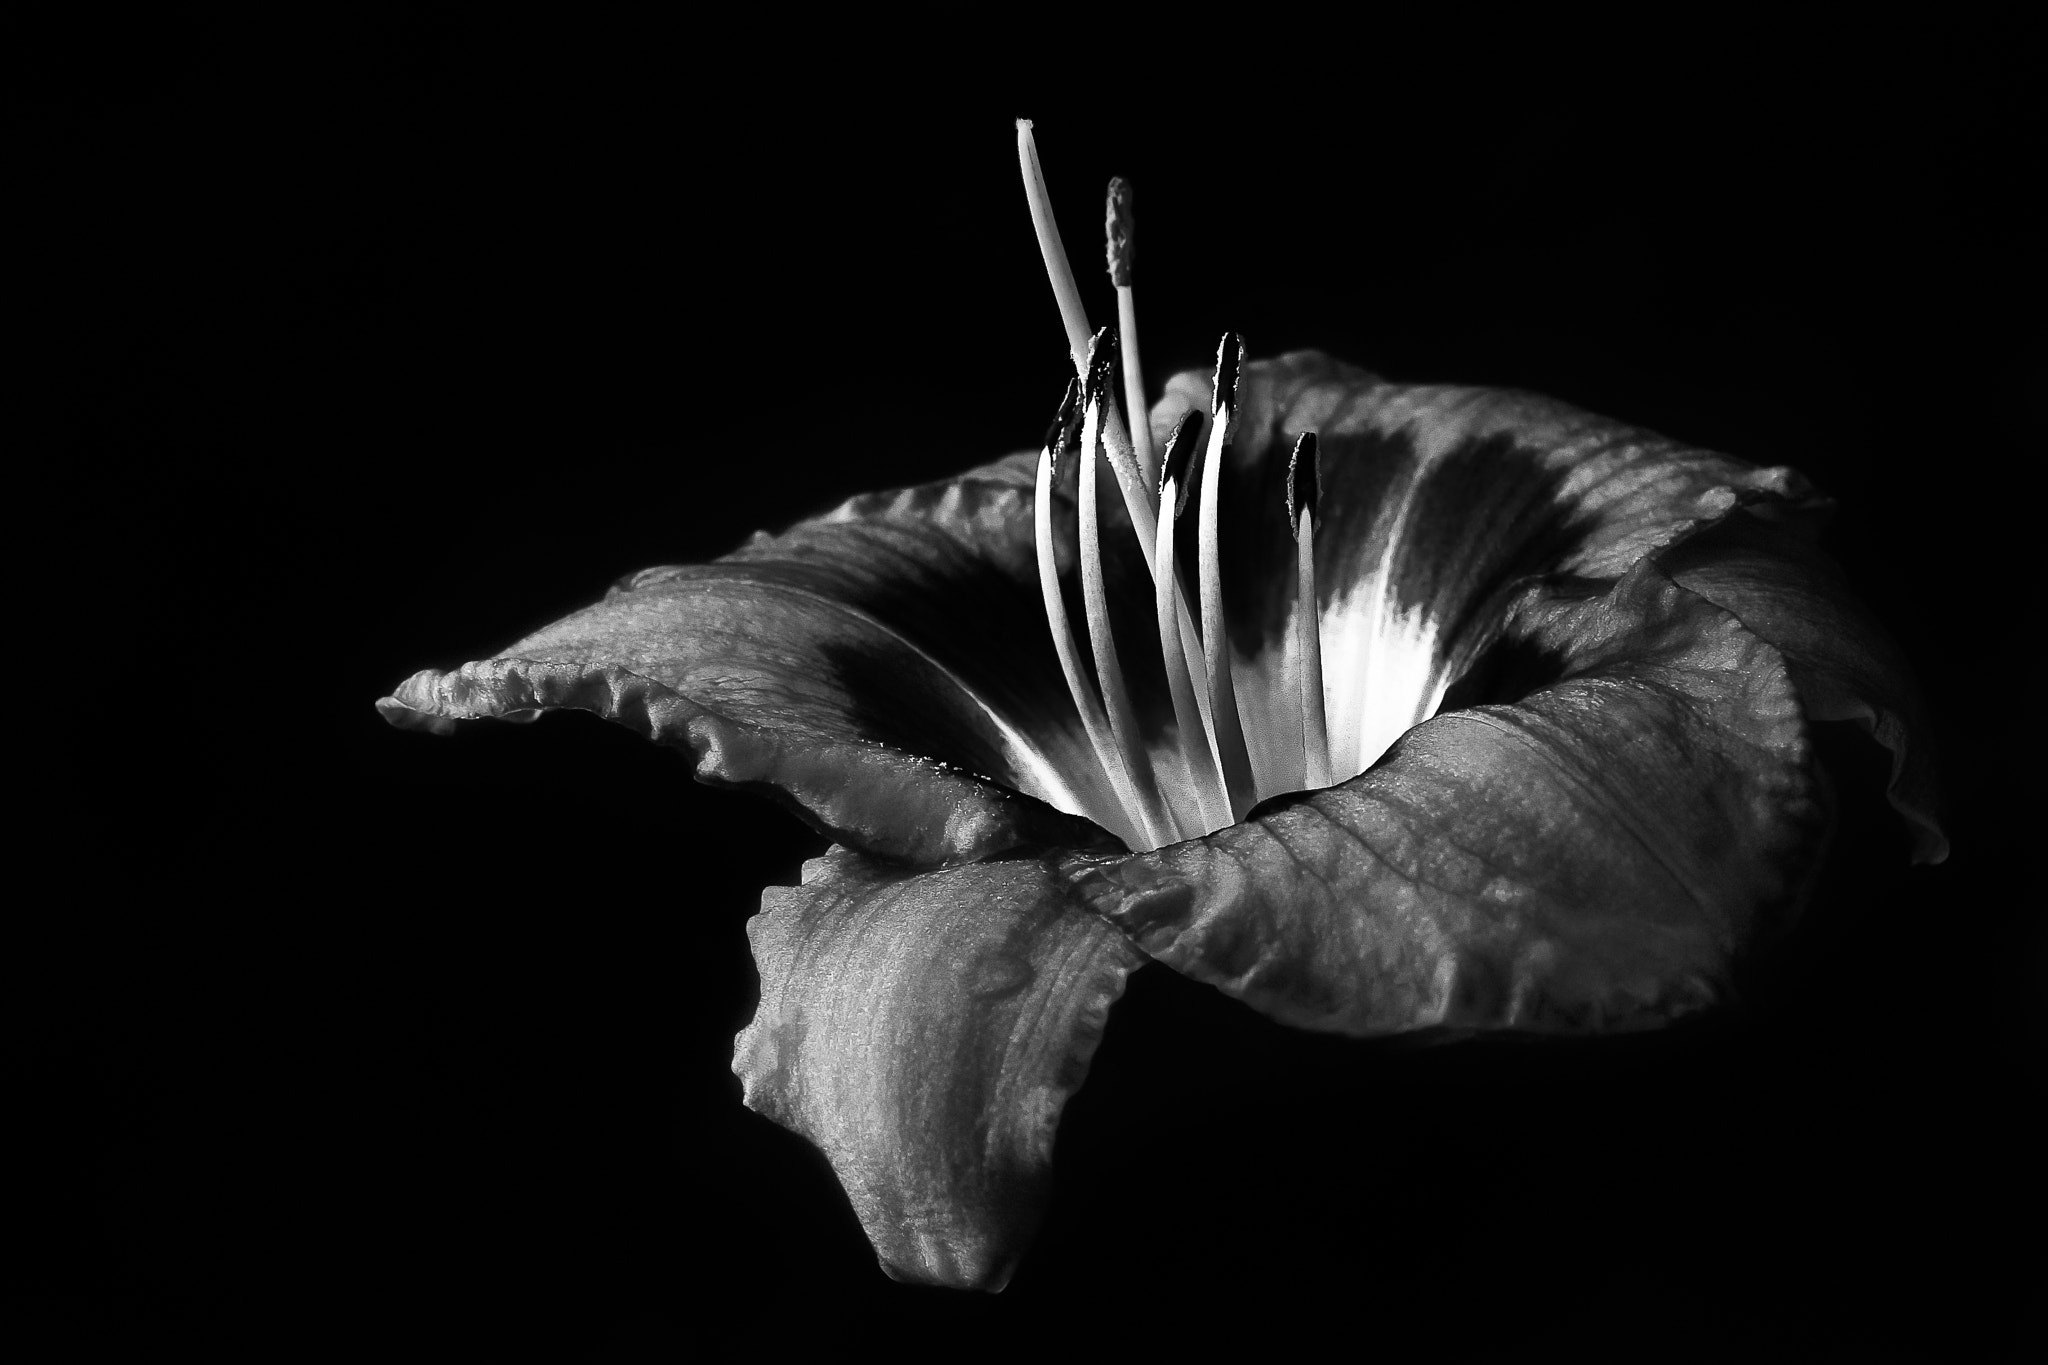 Photograph Day Lilly BnW 2 by David R. Dolezsar on 500px